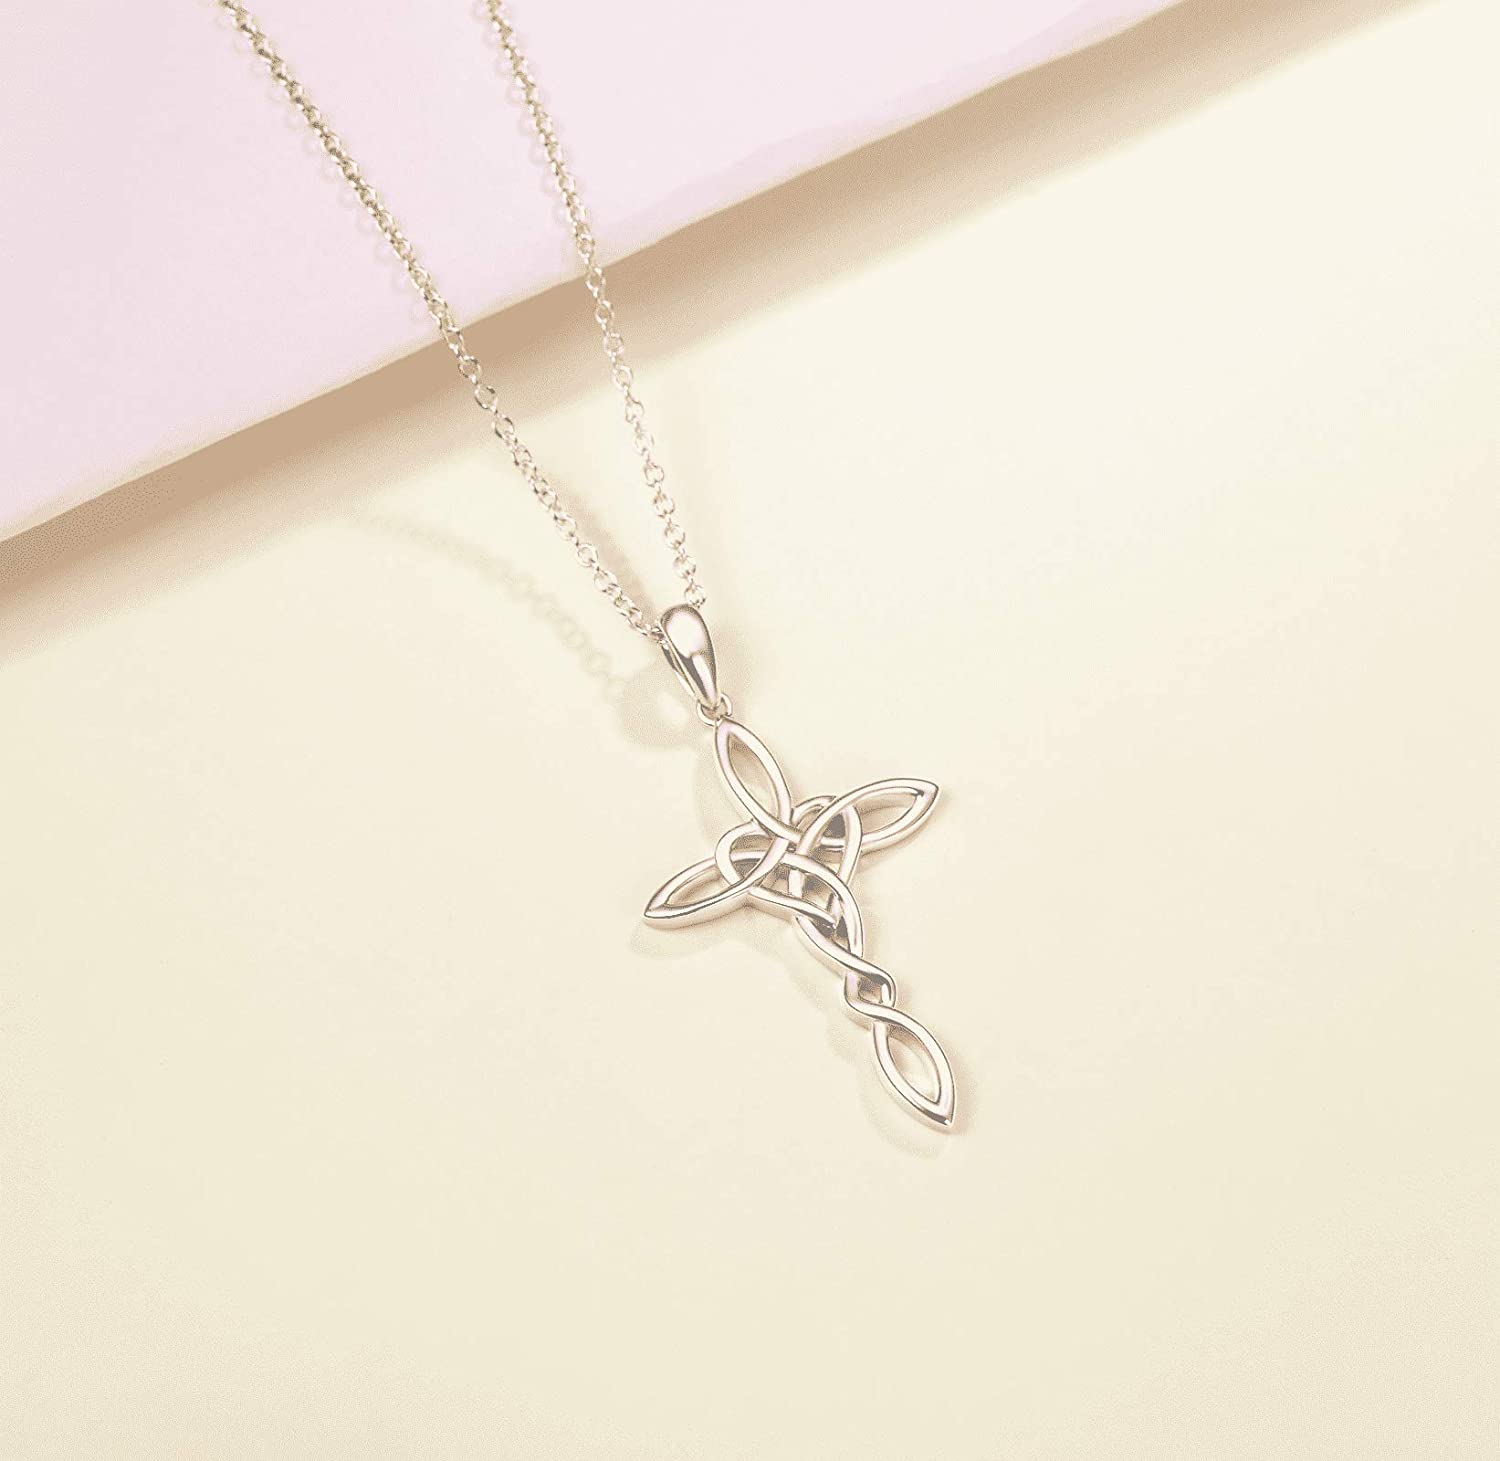 FANCIME 14K White Gold Plated Sterling Silver Celtic Knot Crucifix-Cross Heart Knot Pendant Necklace Polished Look for Women Girls,16+2